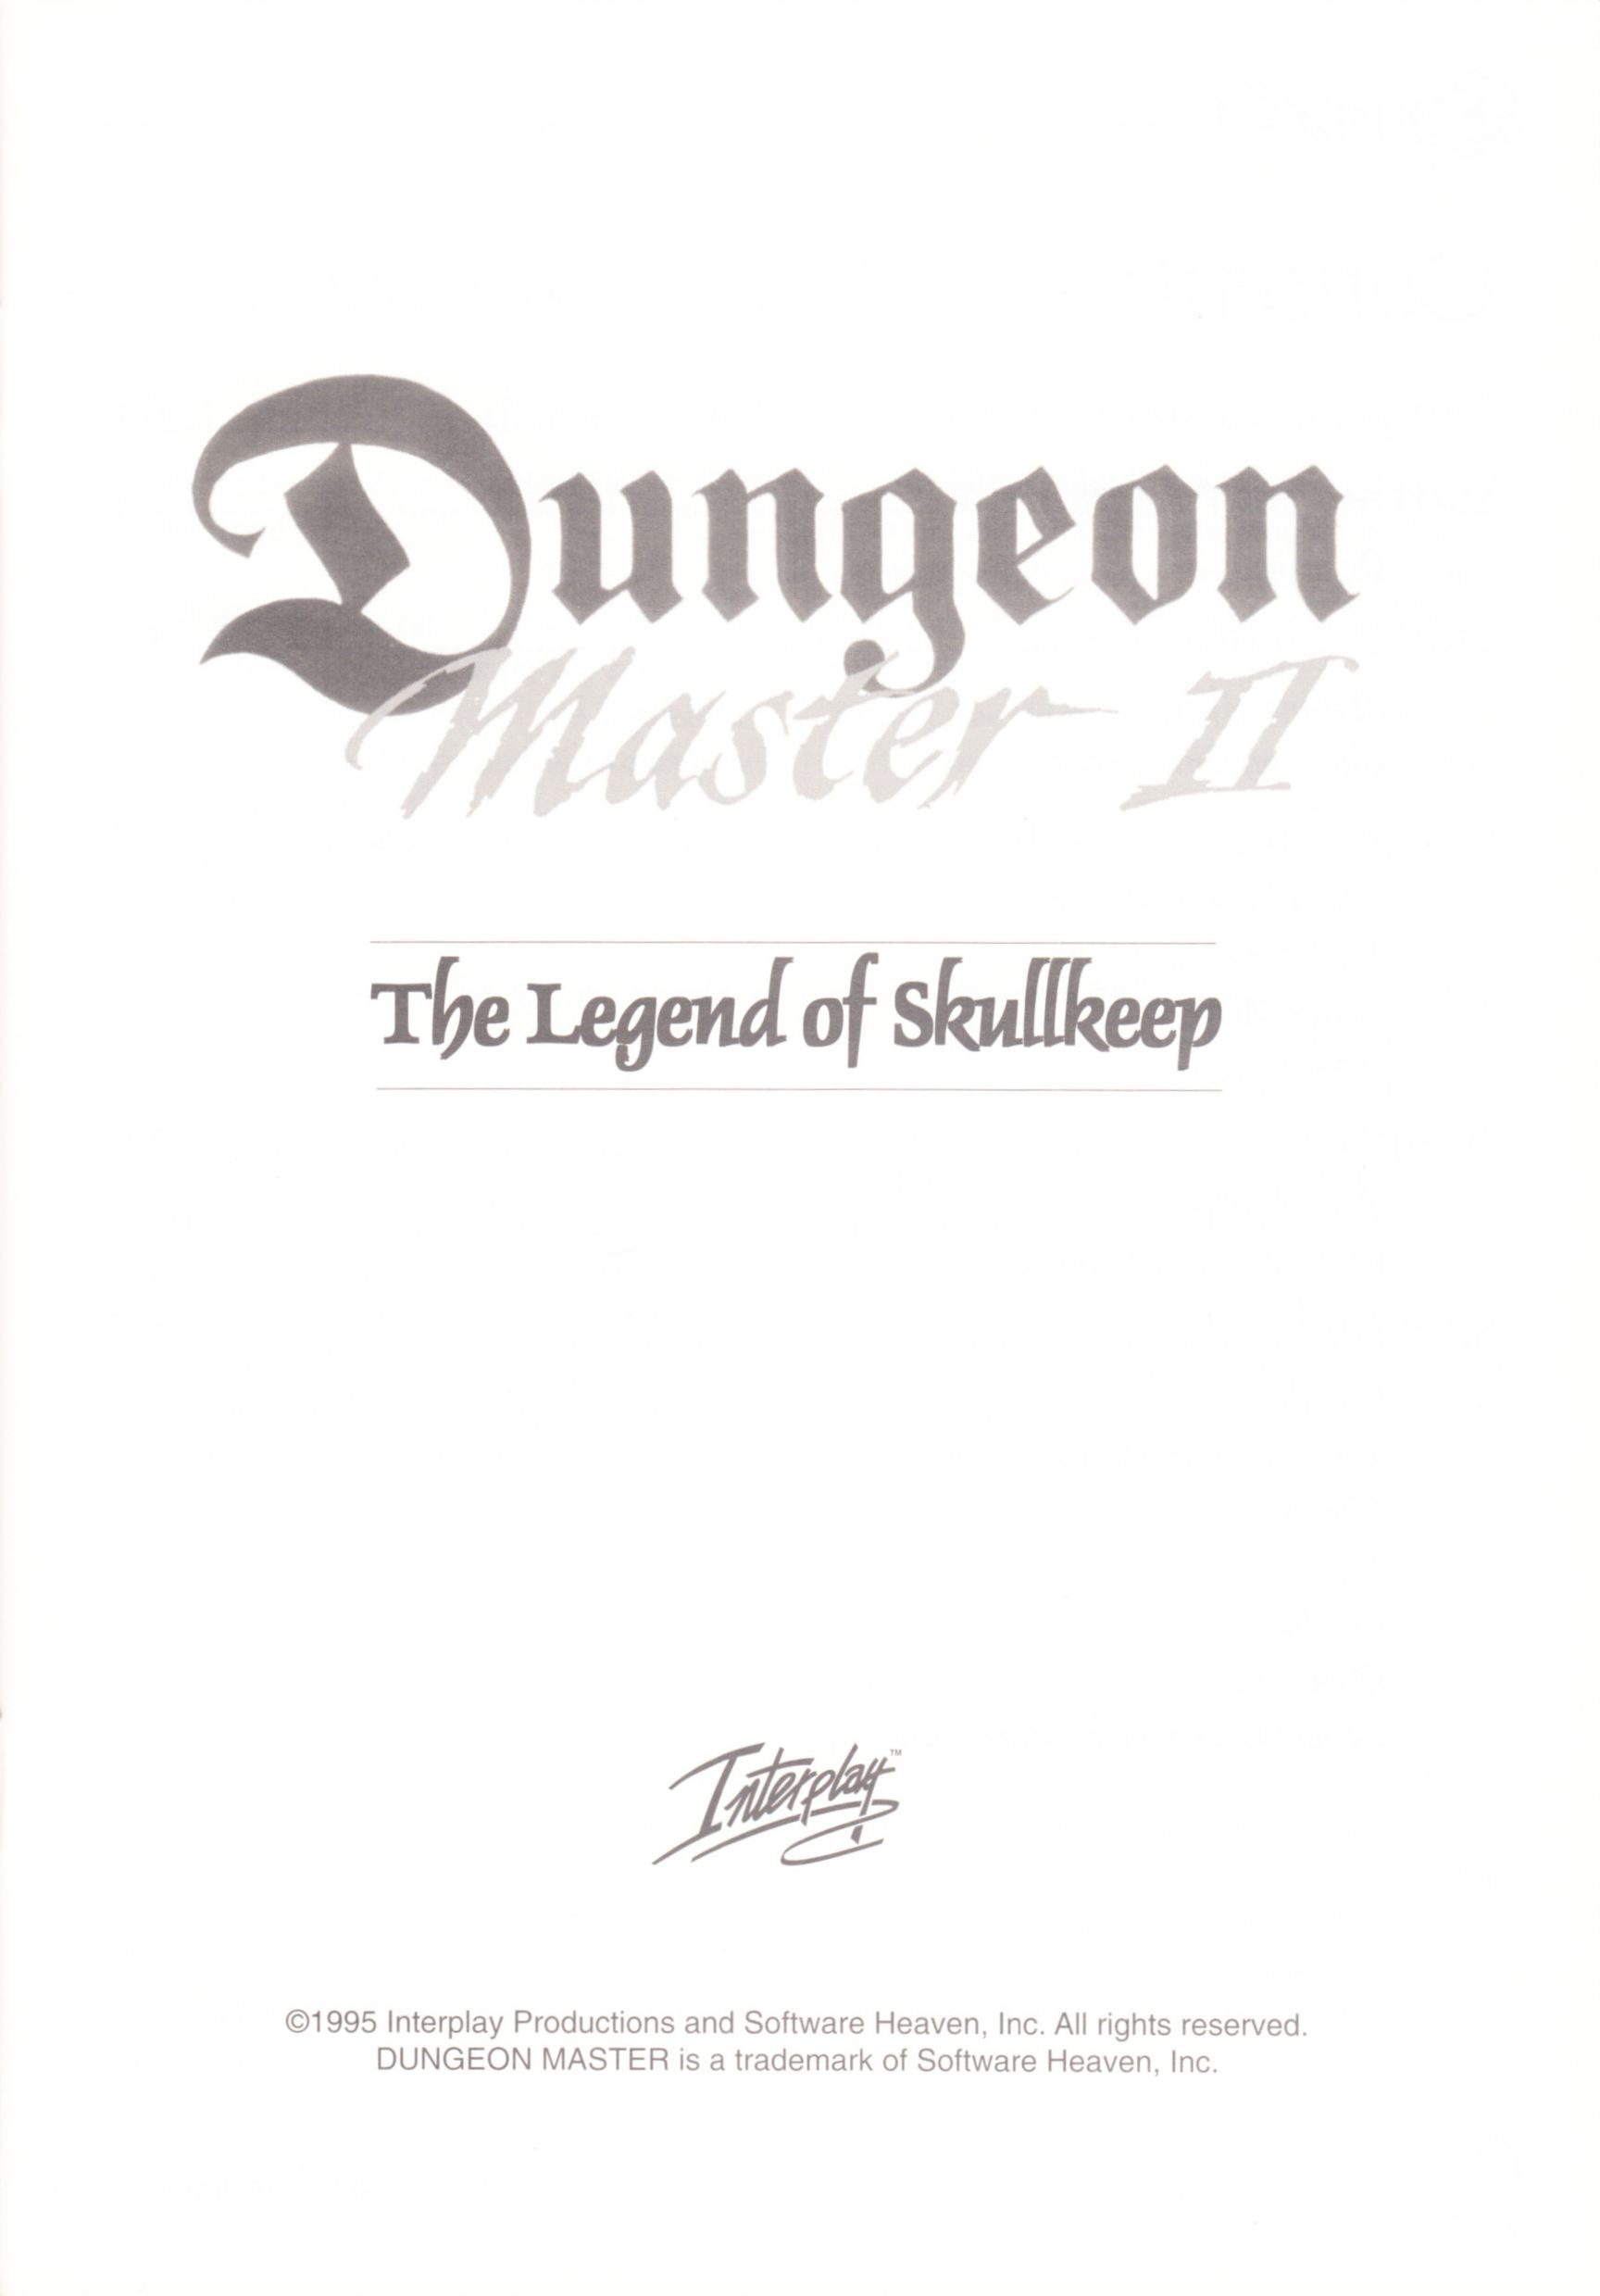 Game - Dungeon Master II - UK - Macintosh - Manual - Page 003 - Scan